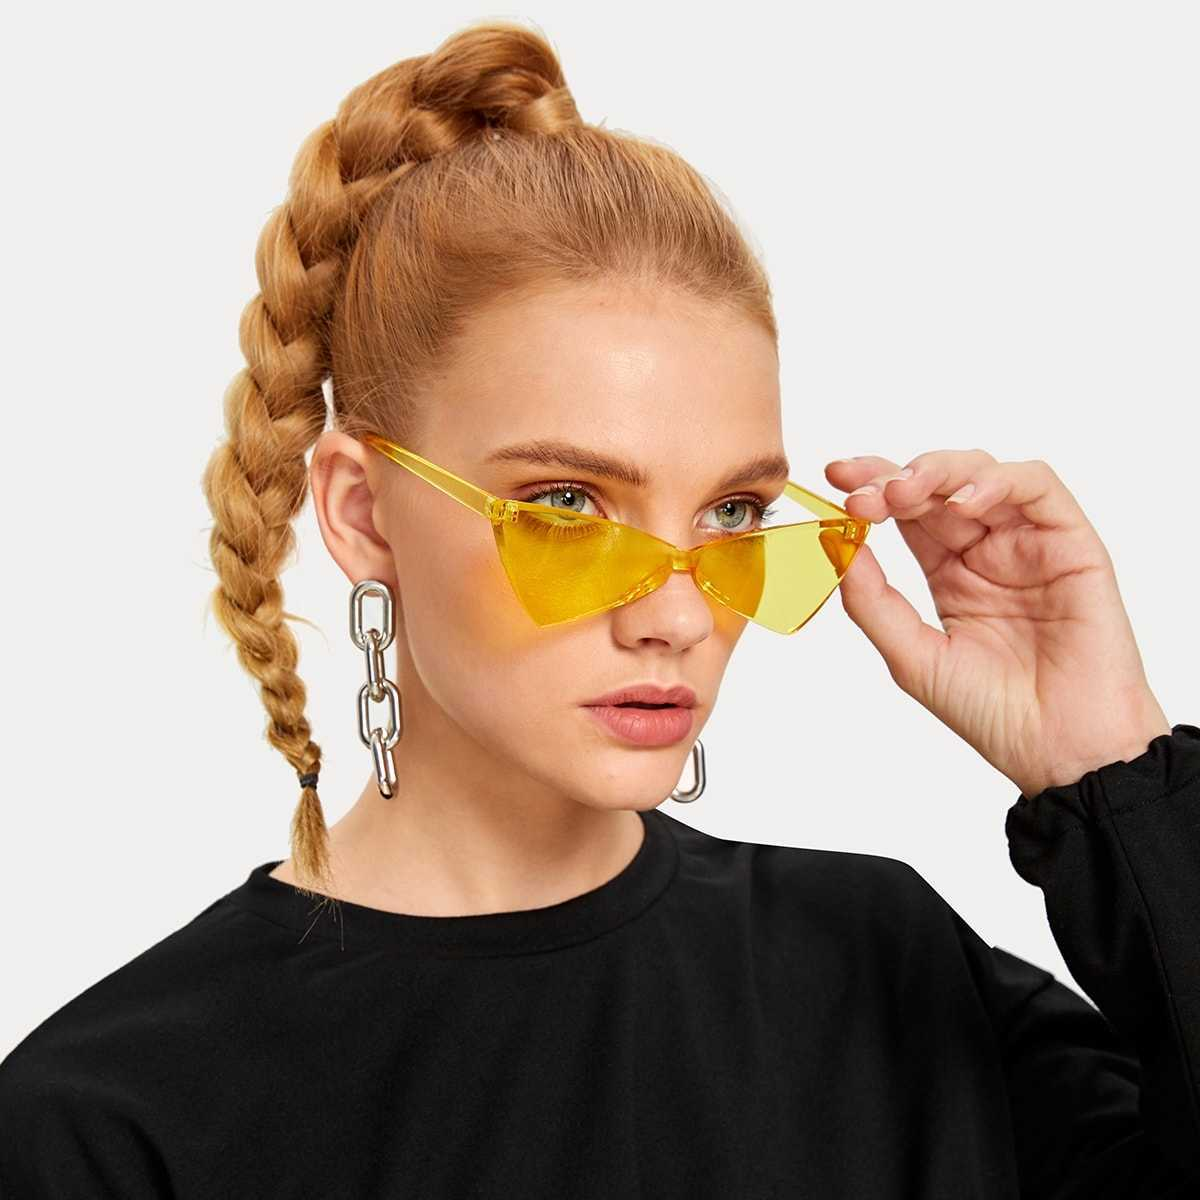 Triangle Rimless Colored Lens Sunglasses in Yellow by ROMWE on GOOFASH